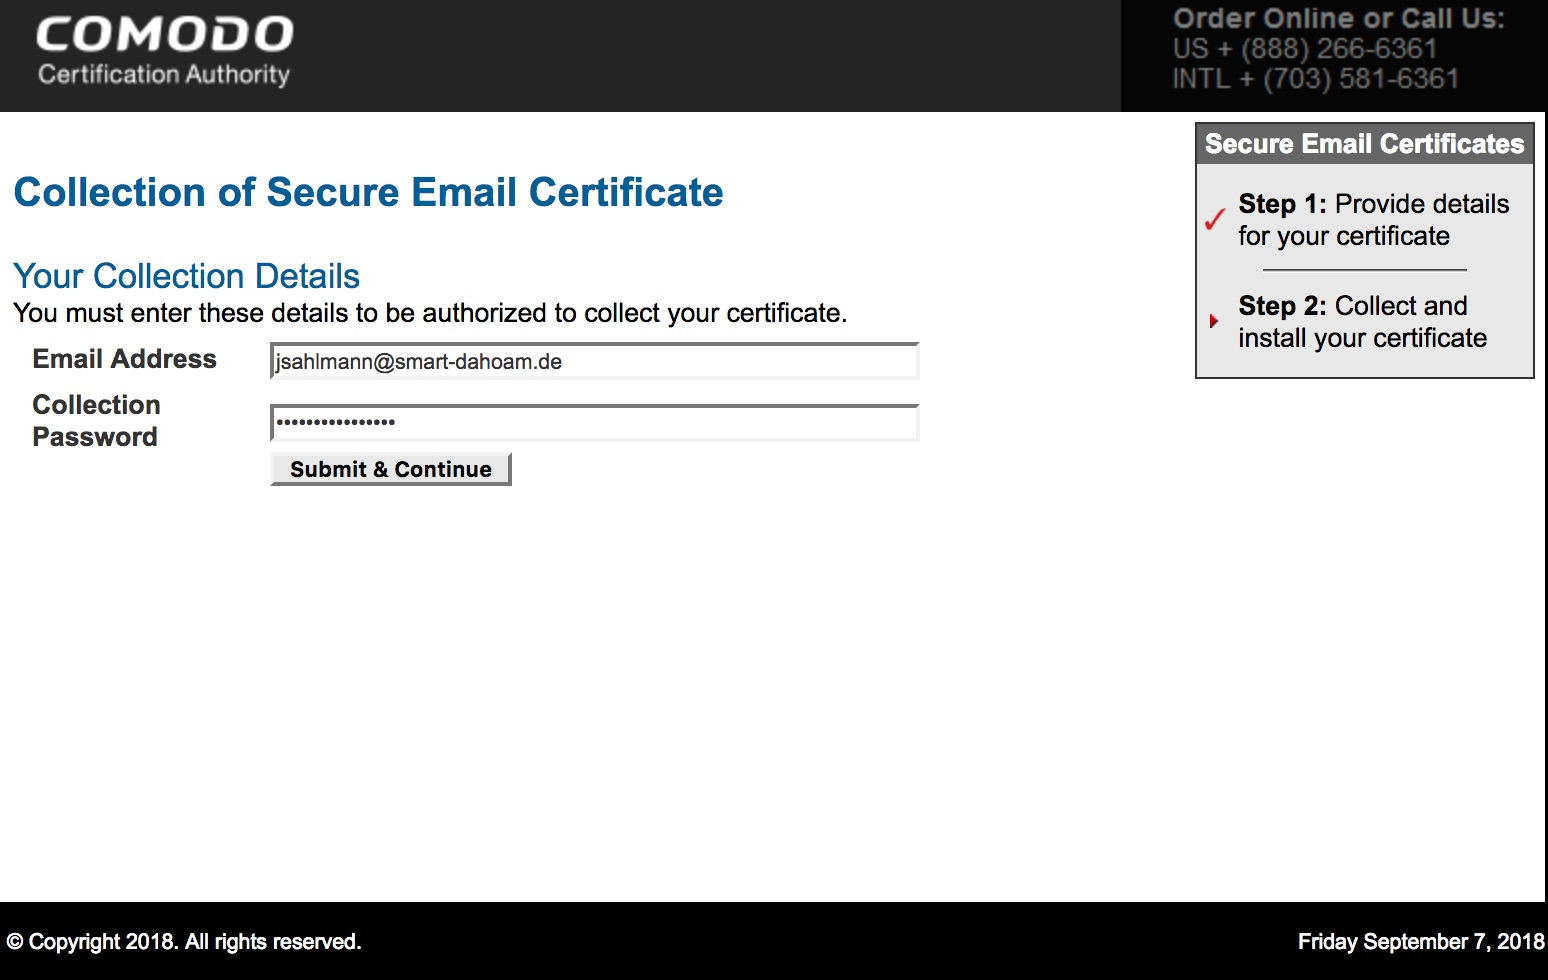 Secure_Email_Certificates_-_Application_2